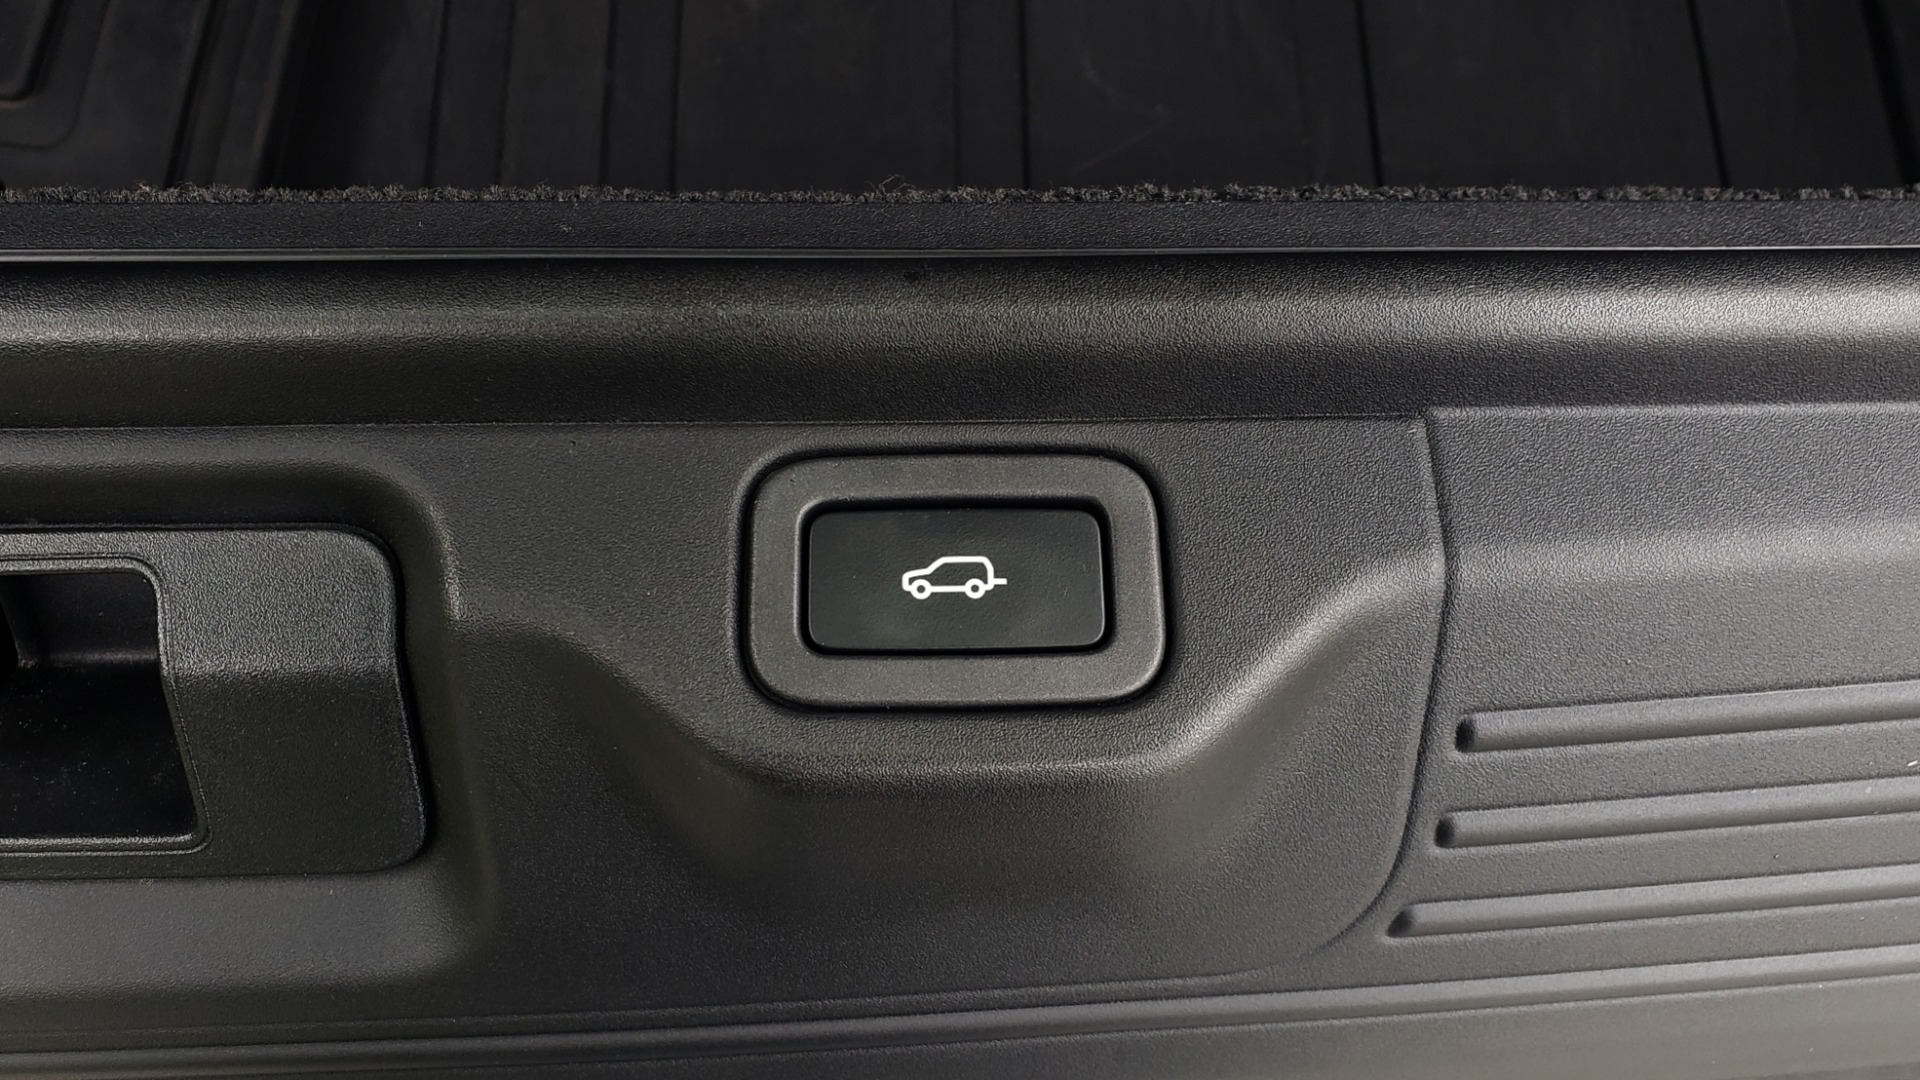 Used 2016 Land Rover Range Rover HSE 3.0L SC V6 / NAV / PANO-ROOF / VENT SEATS / REARVIEW / BLIND SPOT for sale Sold at Formula Imports in Charlotte NC 28227 20